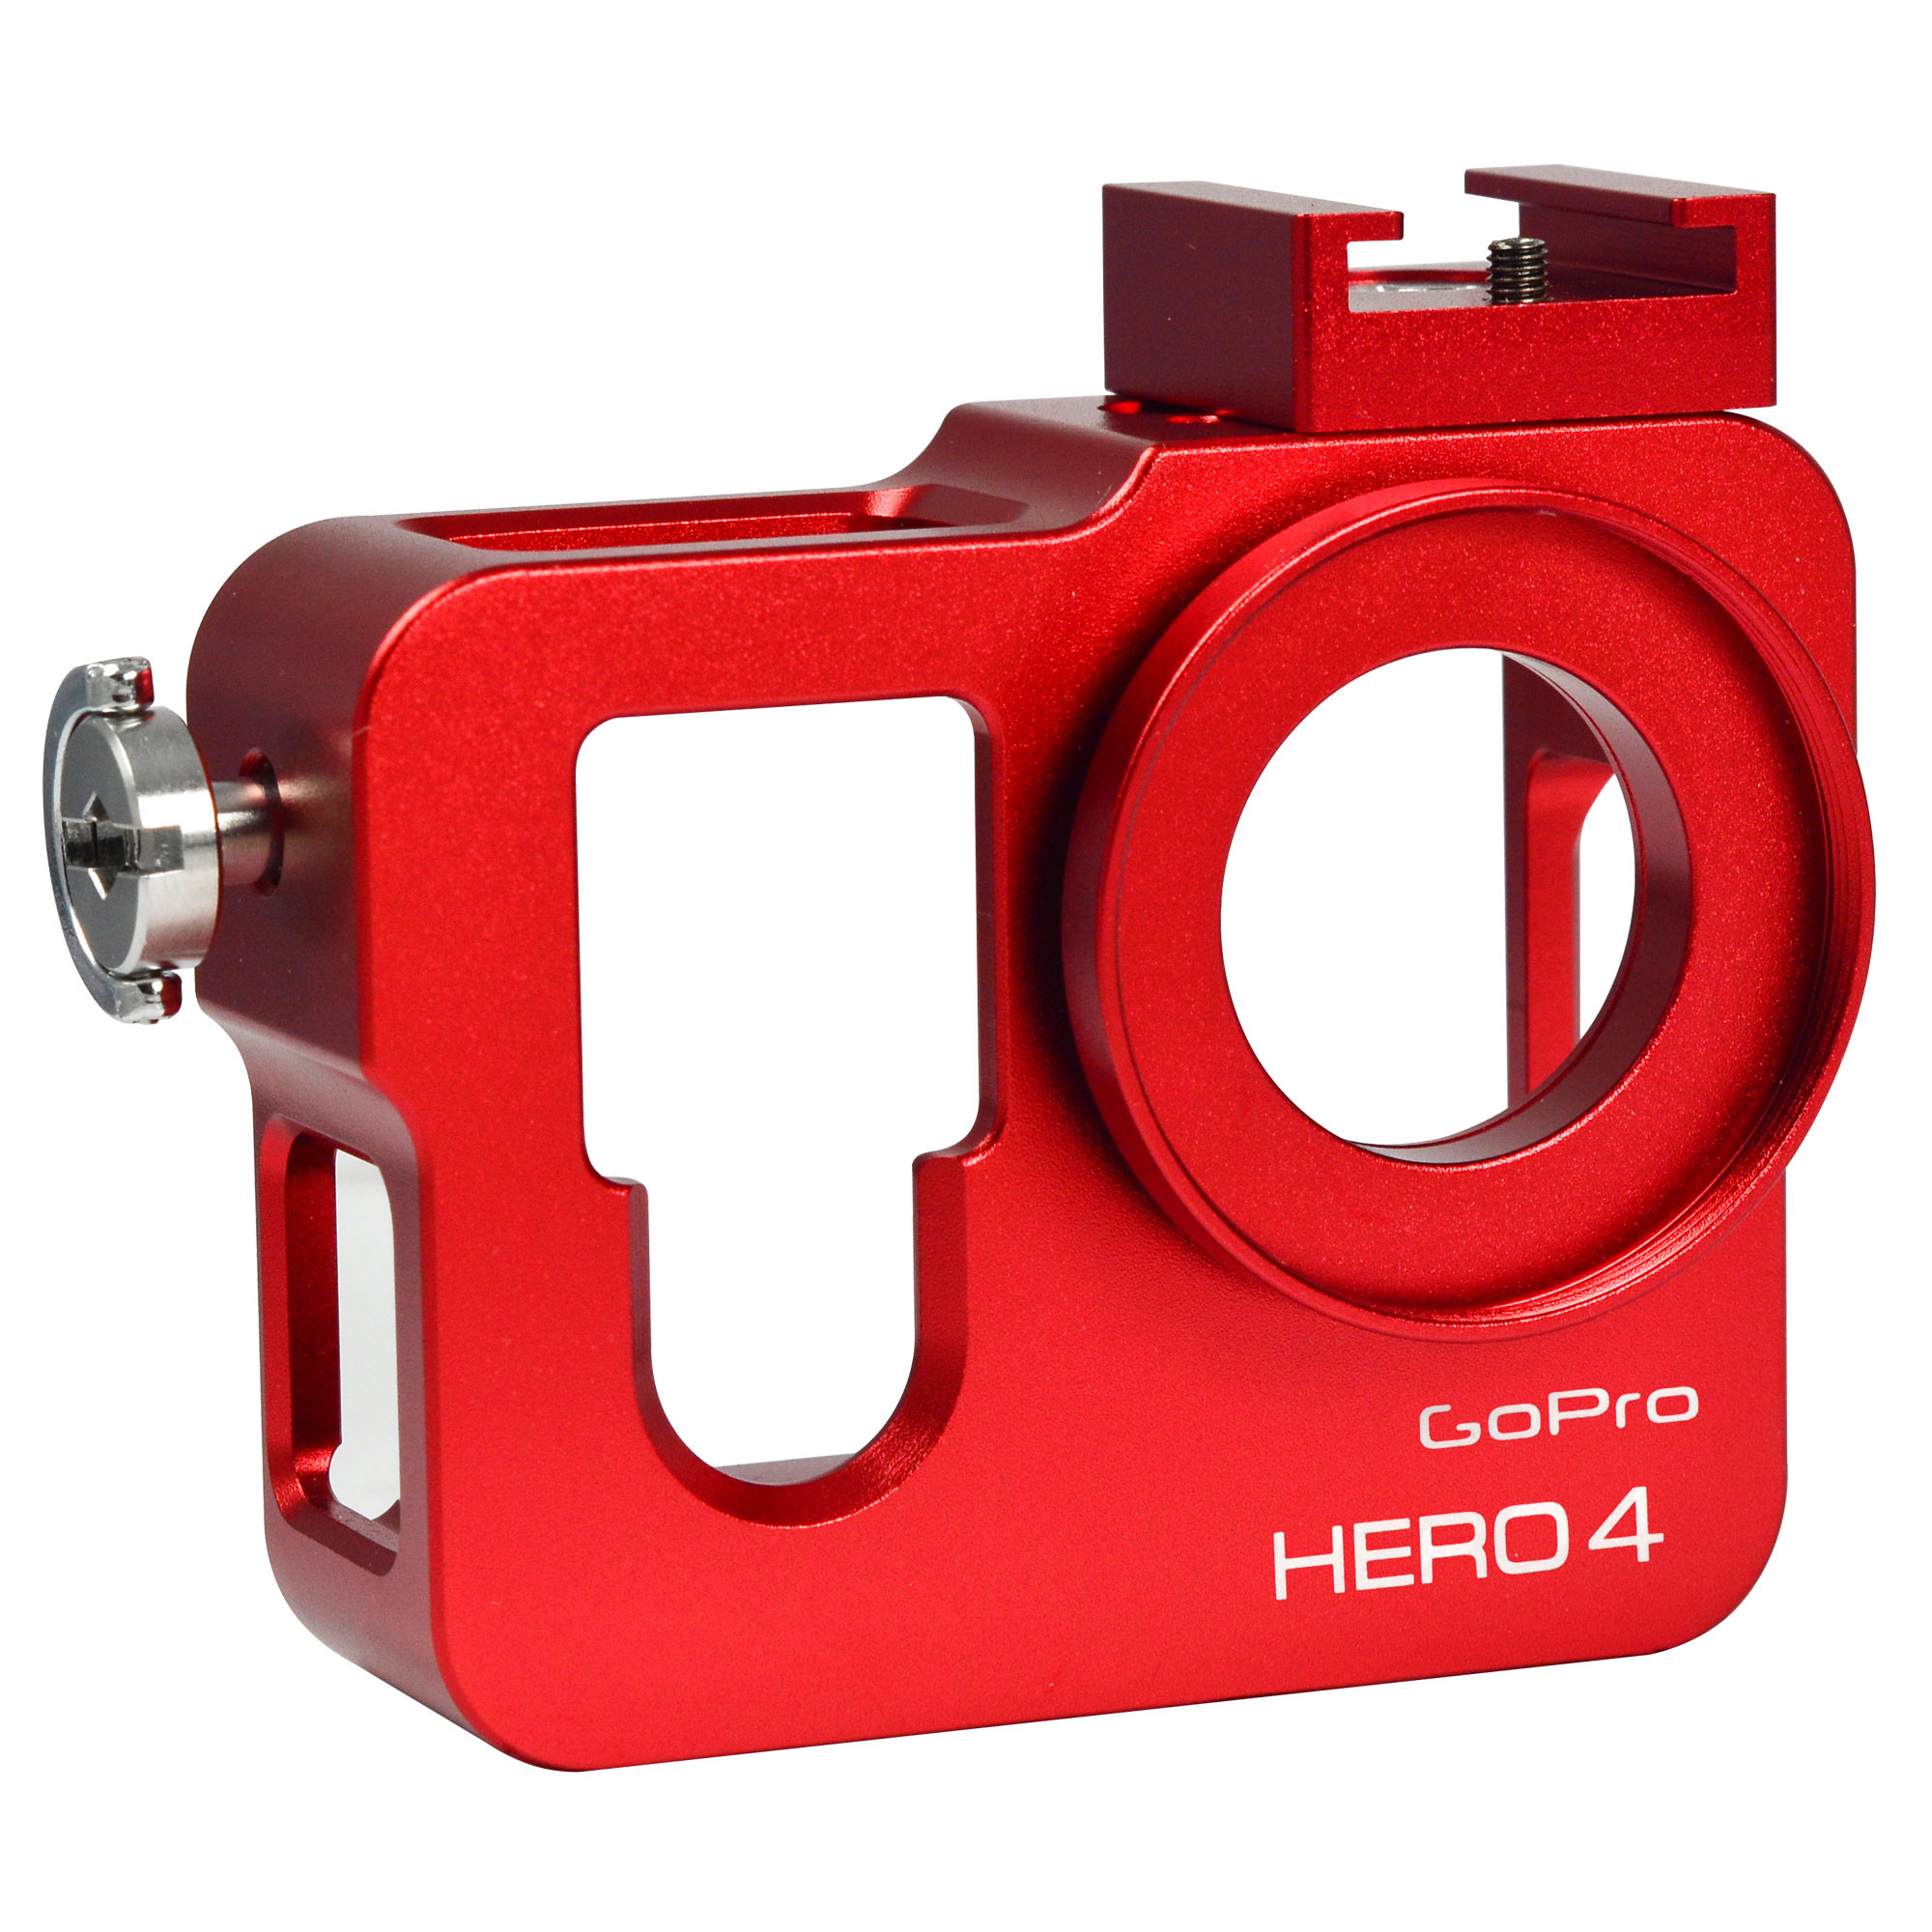 MENGS® Aluminium Housing Case For Gopro Hero 4 with Filter and Lens Cap - Red